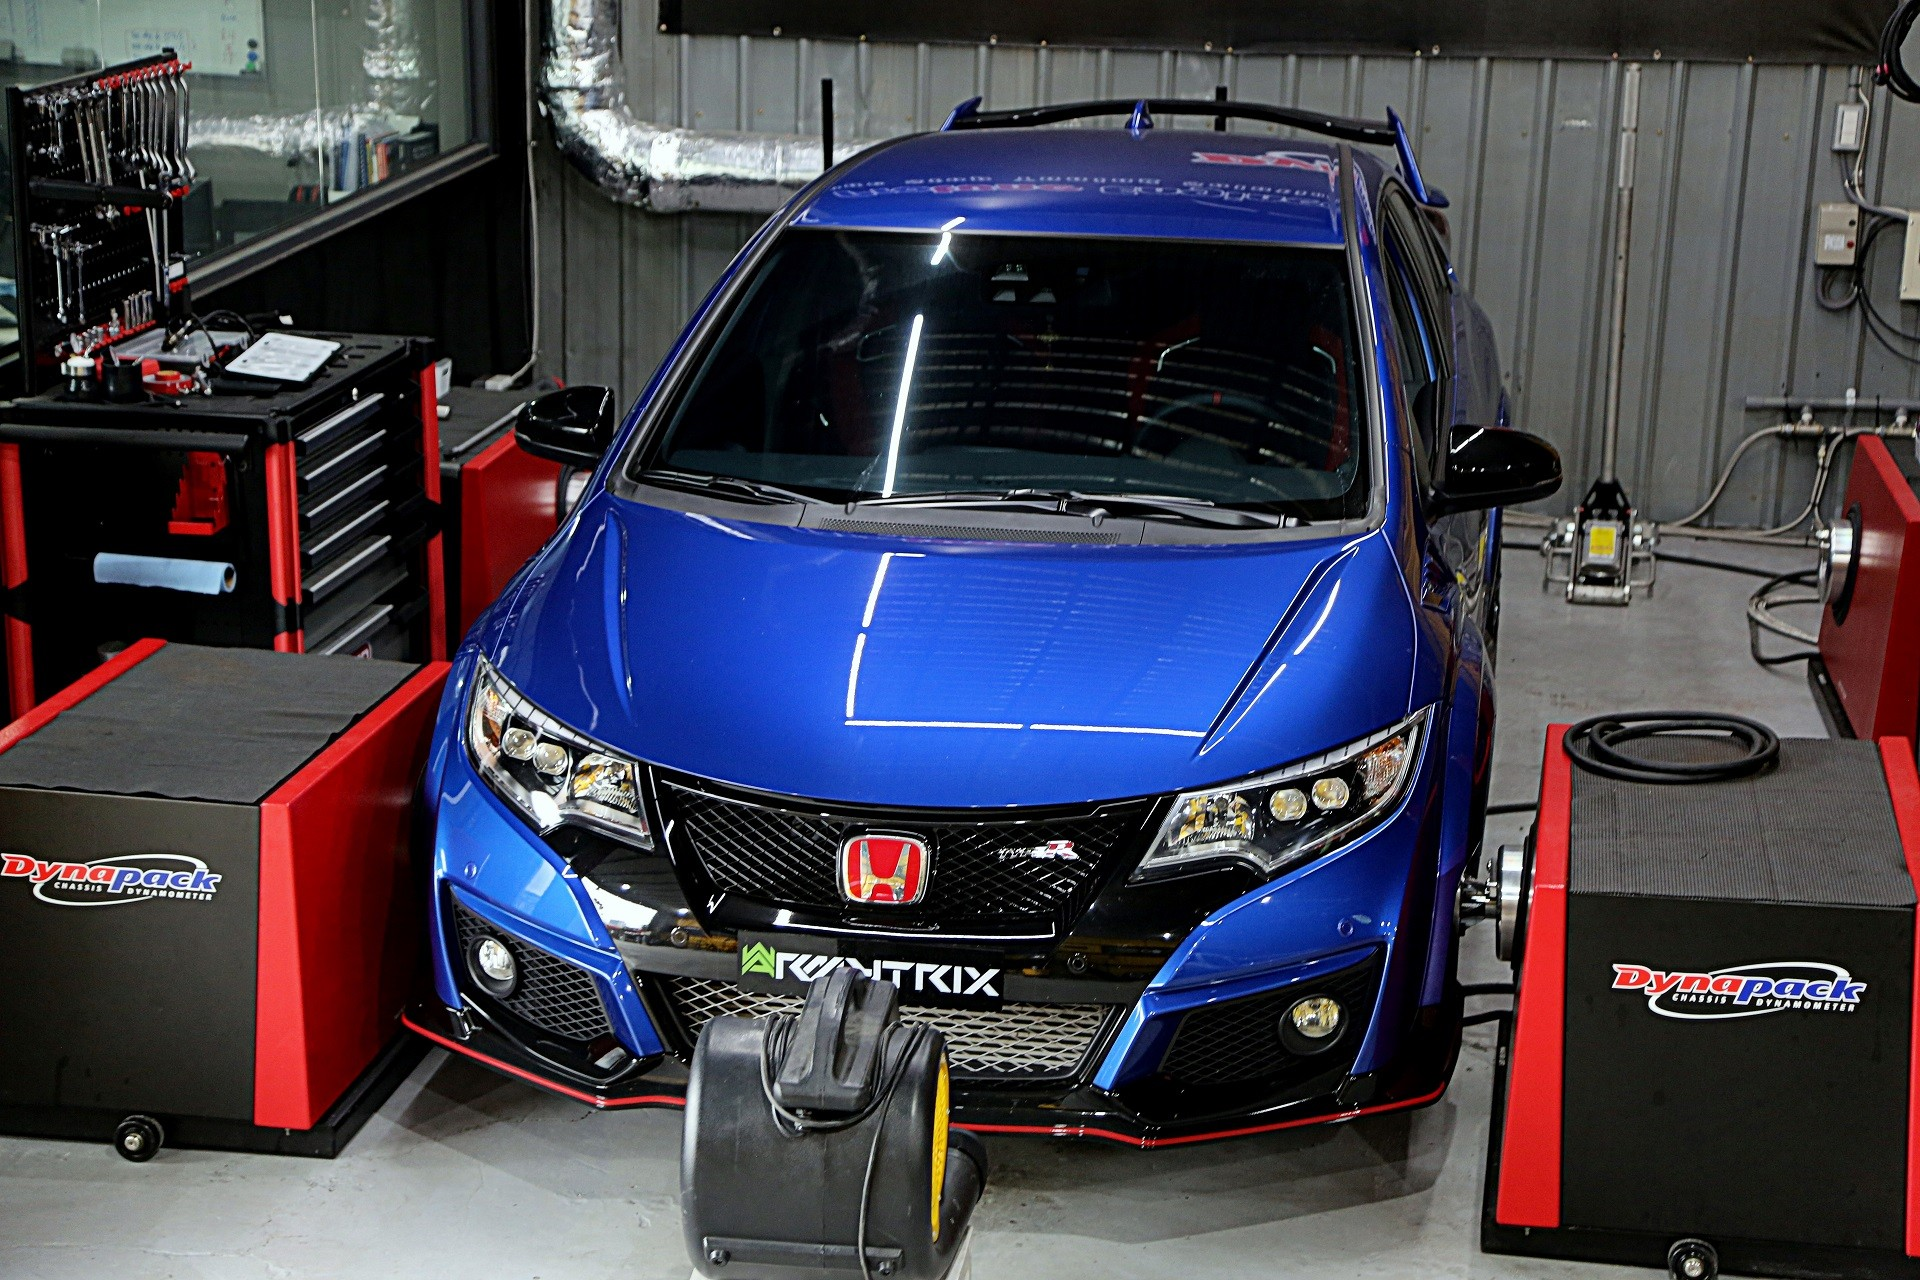 400 hp honda civic type r has armytrix exhaust of pure for Honda type r horsepower